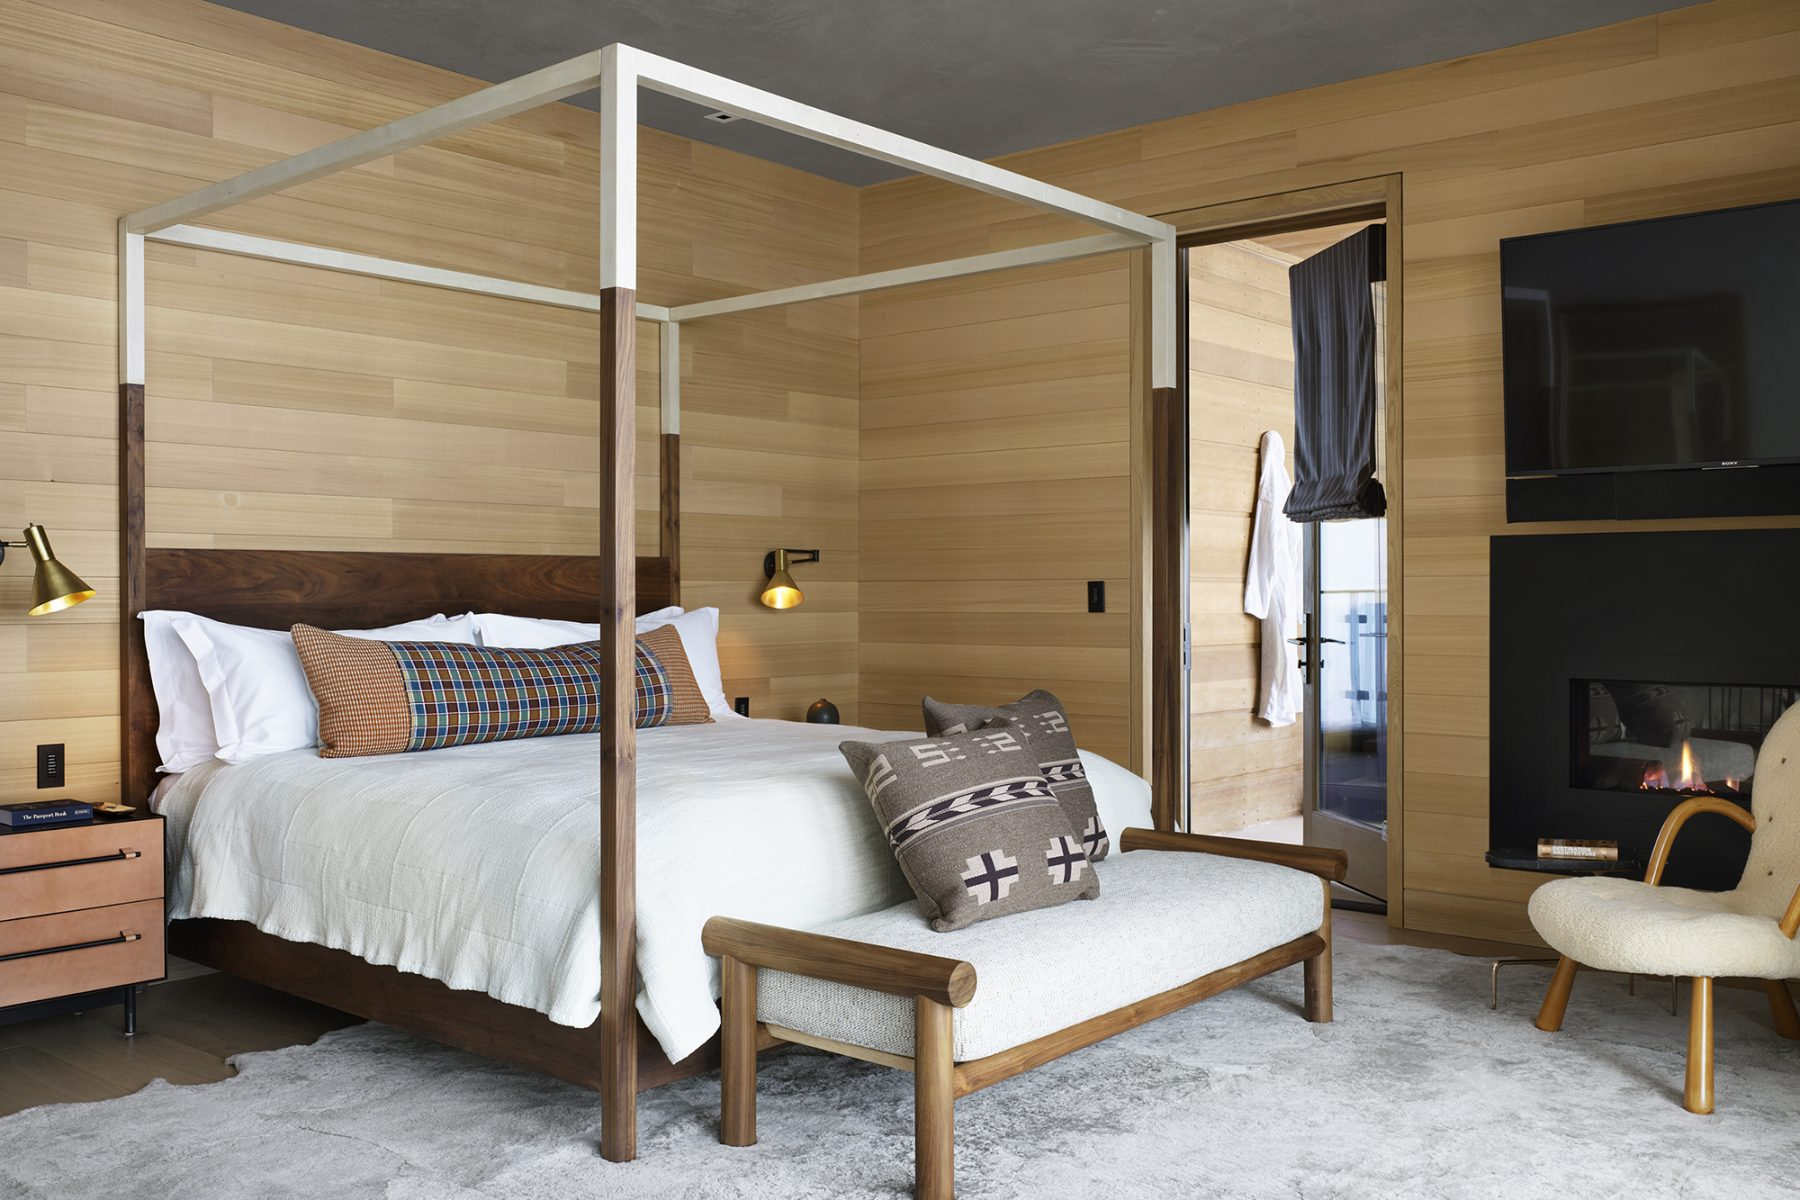 Taupo 4 Bed Suite - king poster bed